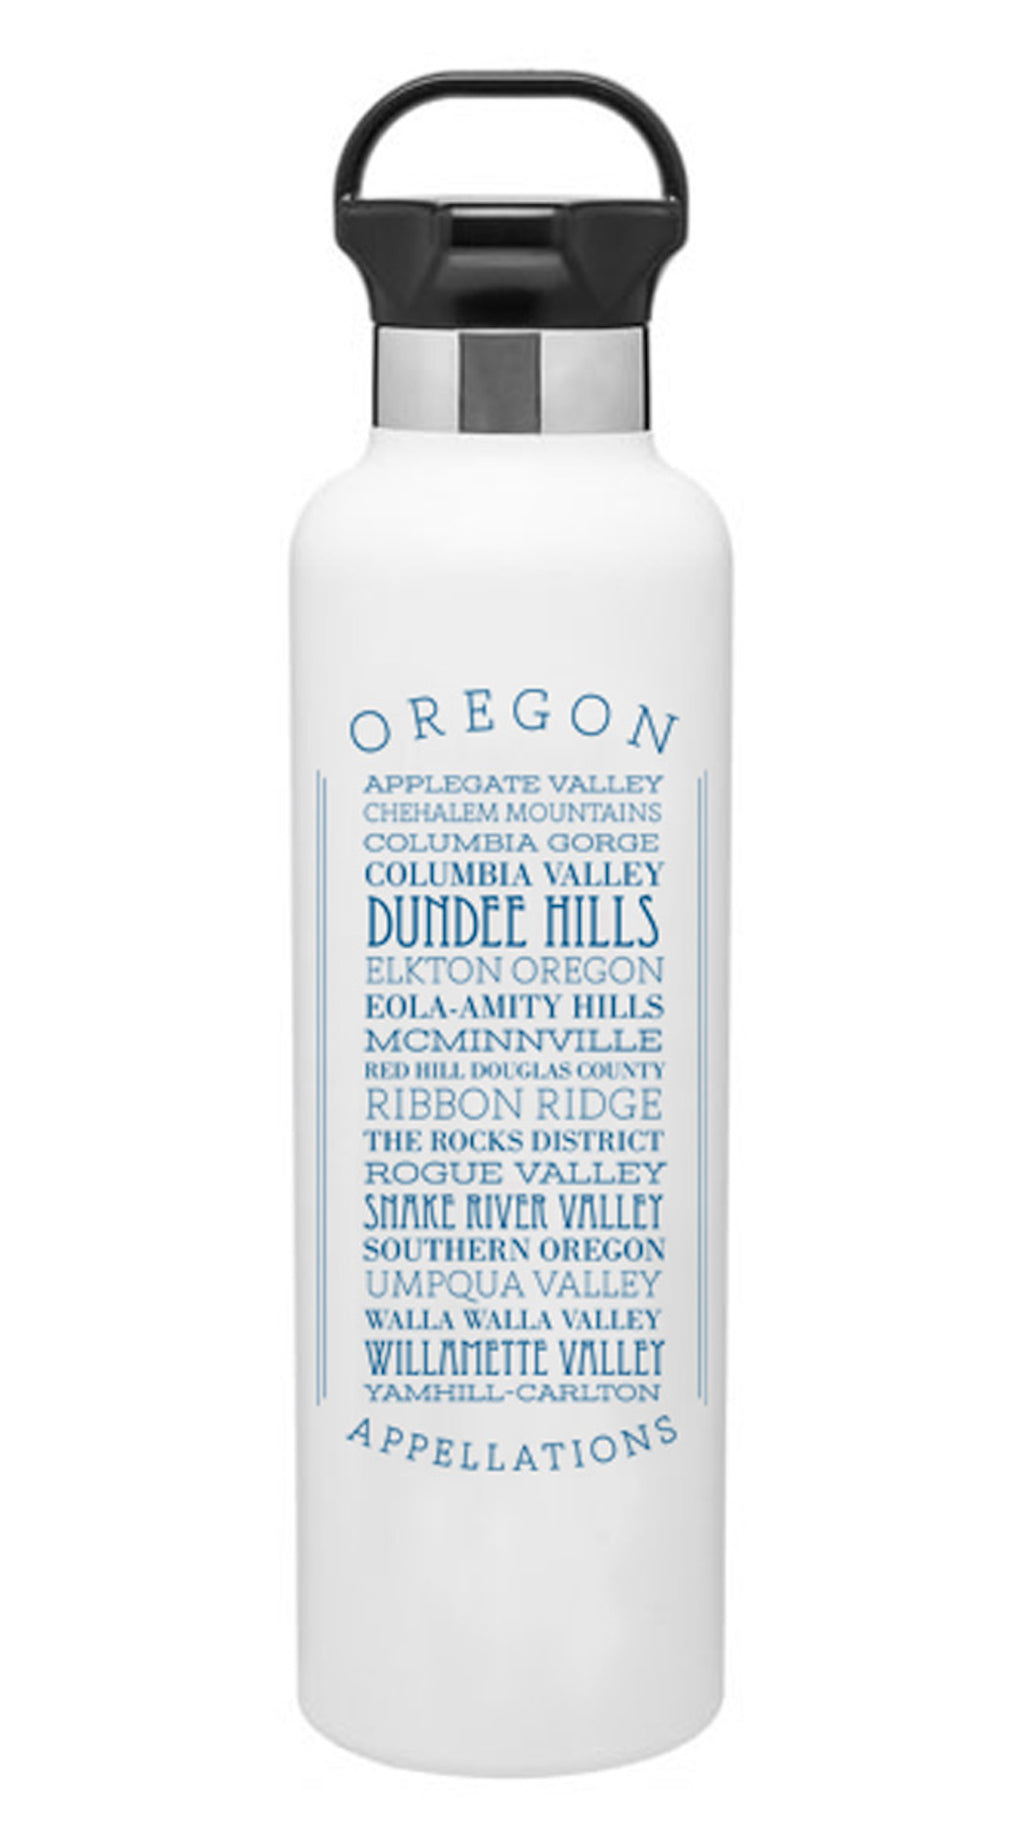 Appellations Oregon Stainless Steel Water Bottle